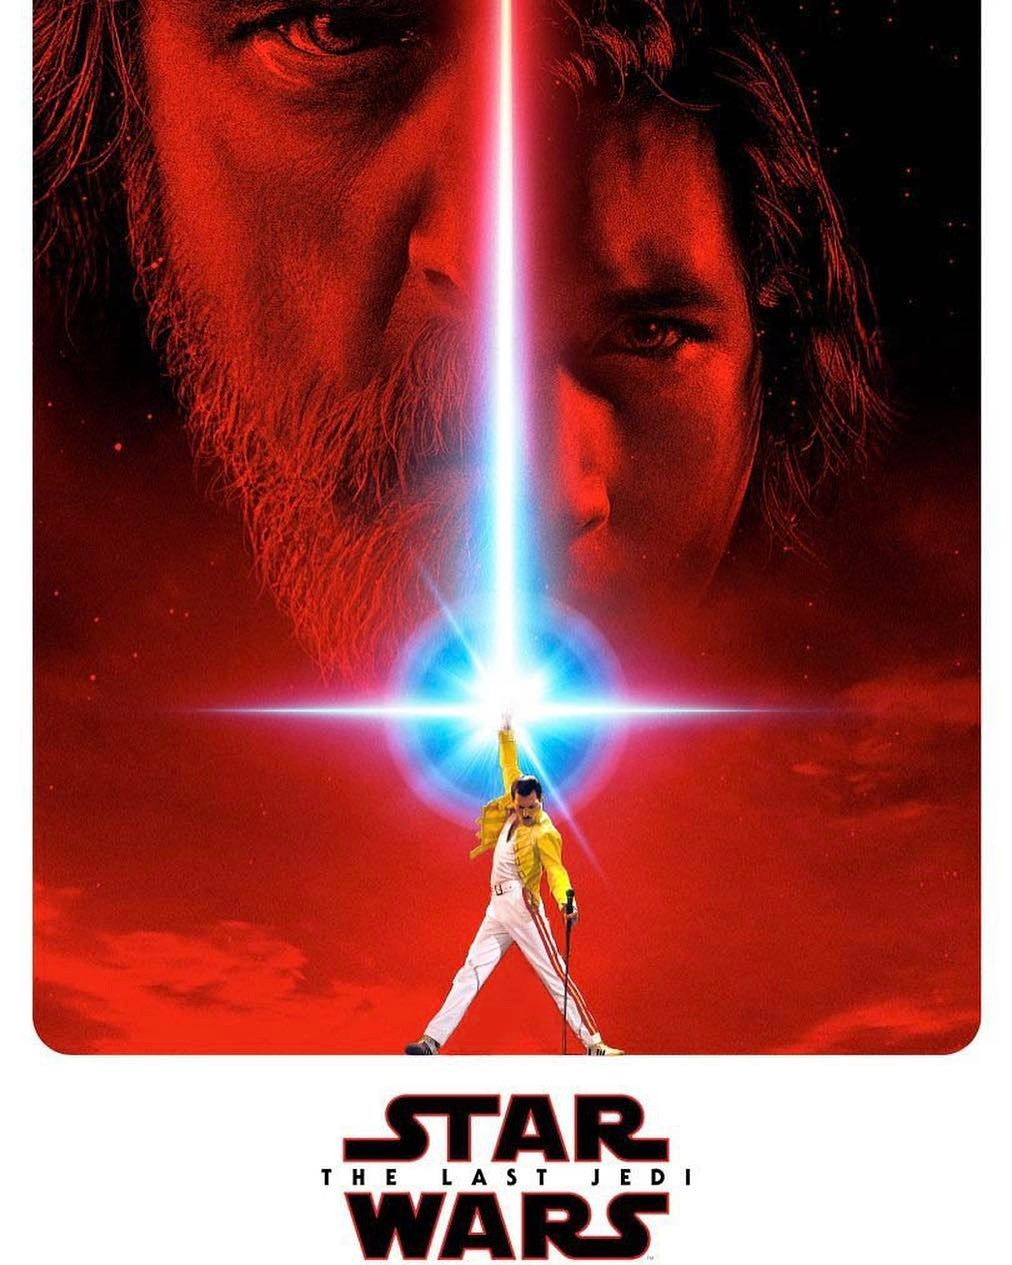 Its The Star Wars Movie We All Want To Break Free Starwars Thelastjedi Star Wars Watch Star Wars Poster Star Wars Episodes